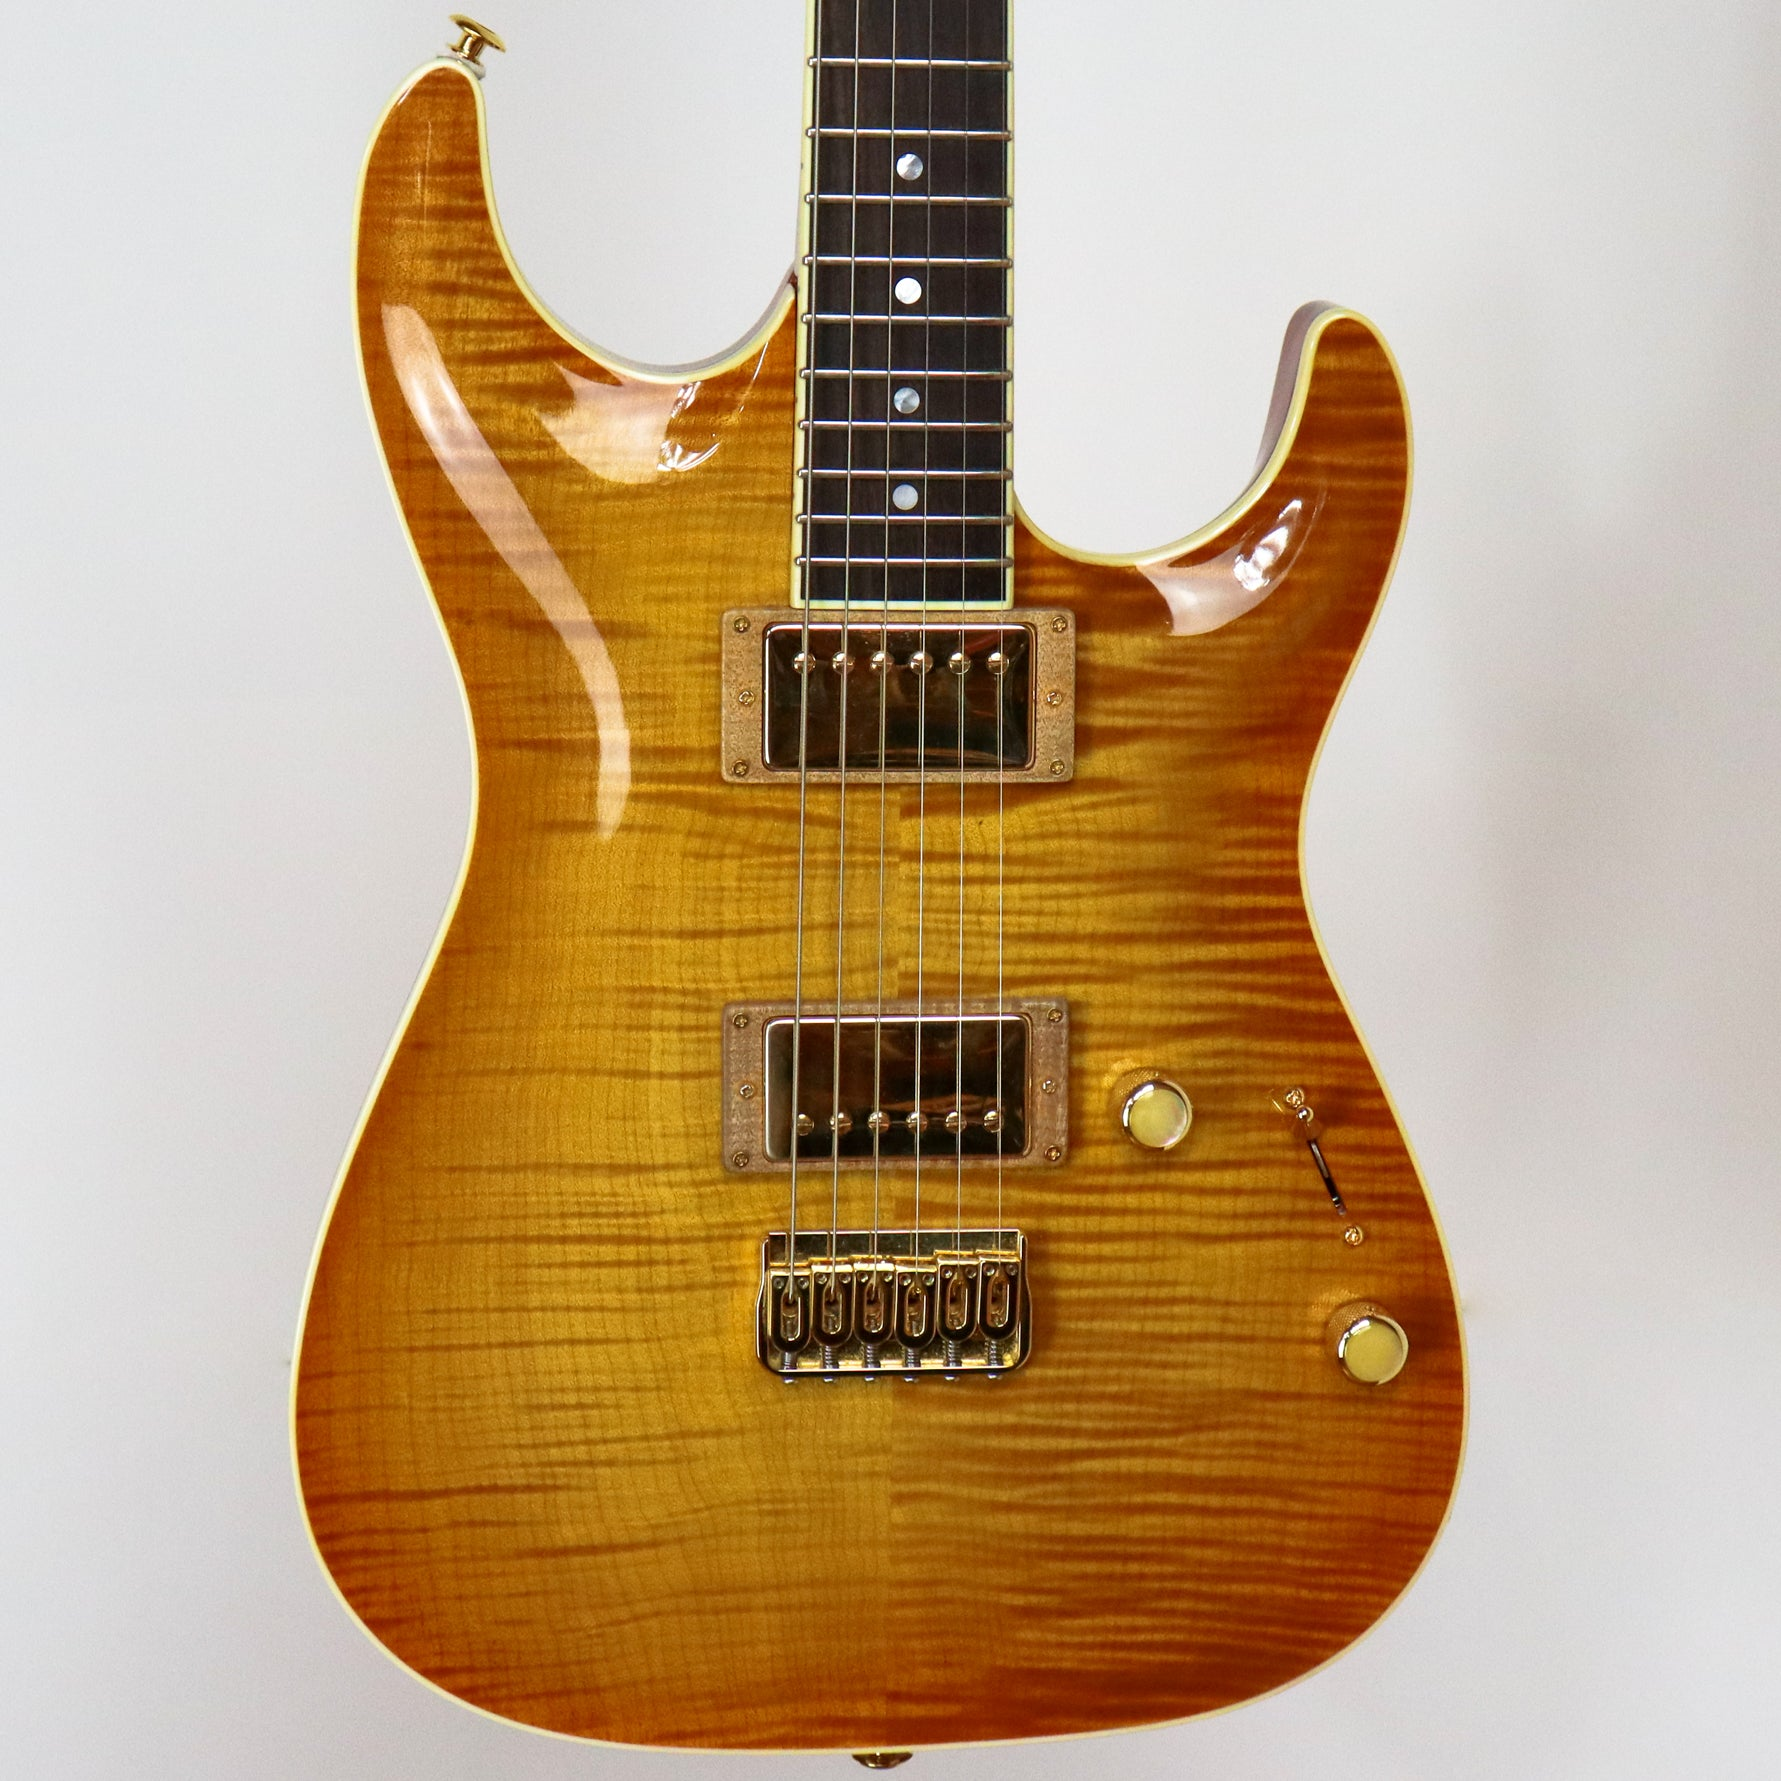 Pensa 2012 MK 1 Plus in Honey Burst